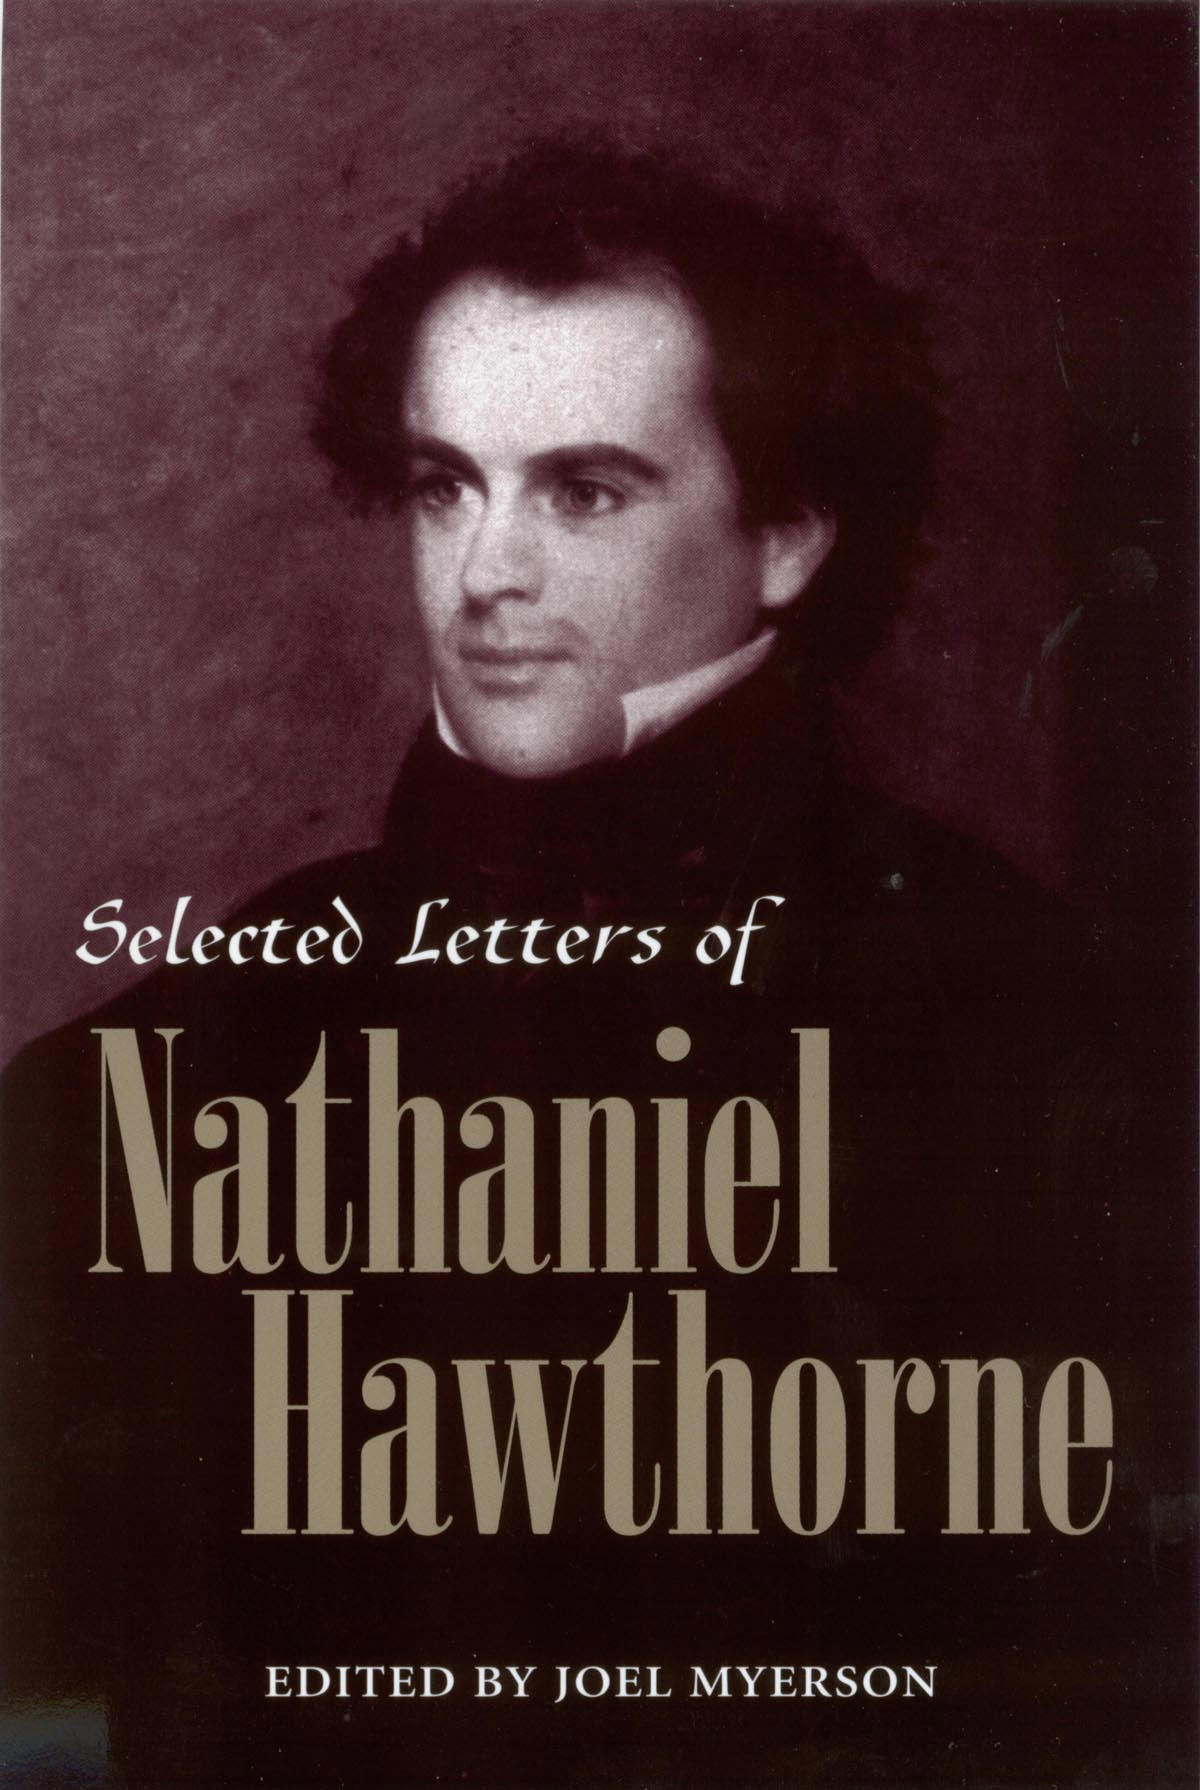 nathaniel hawthorne essays essay on hawthorne effects my family  essay on hawthorne effects